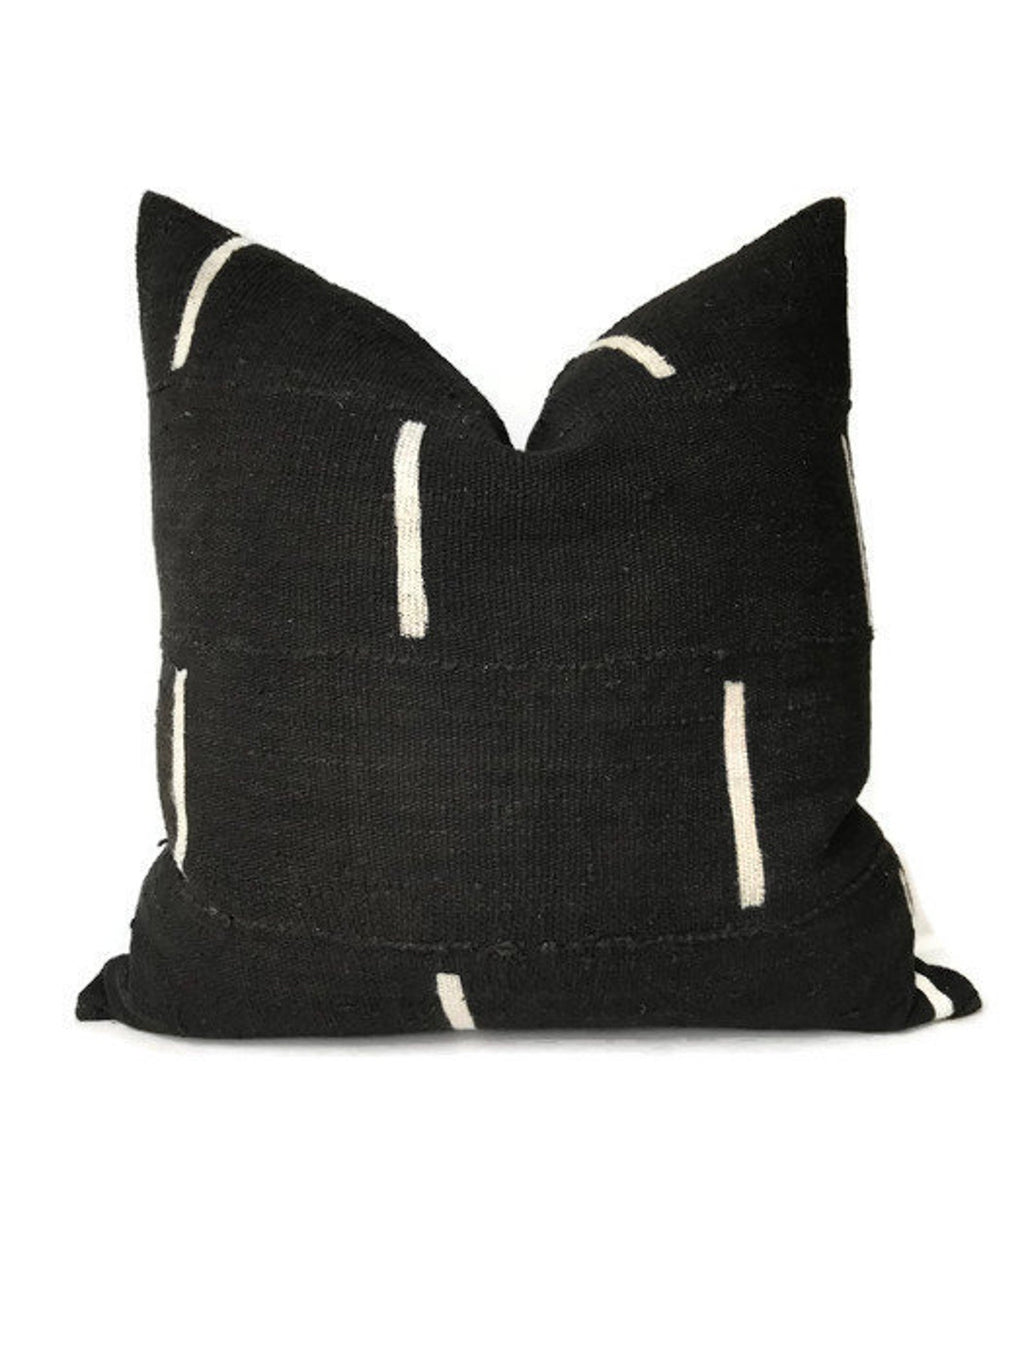 Dashes Print Mudcloth Pillow Cover in Black